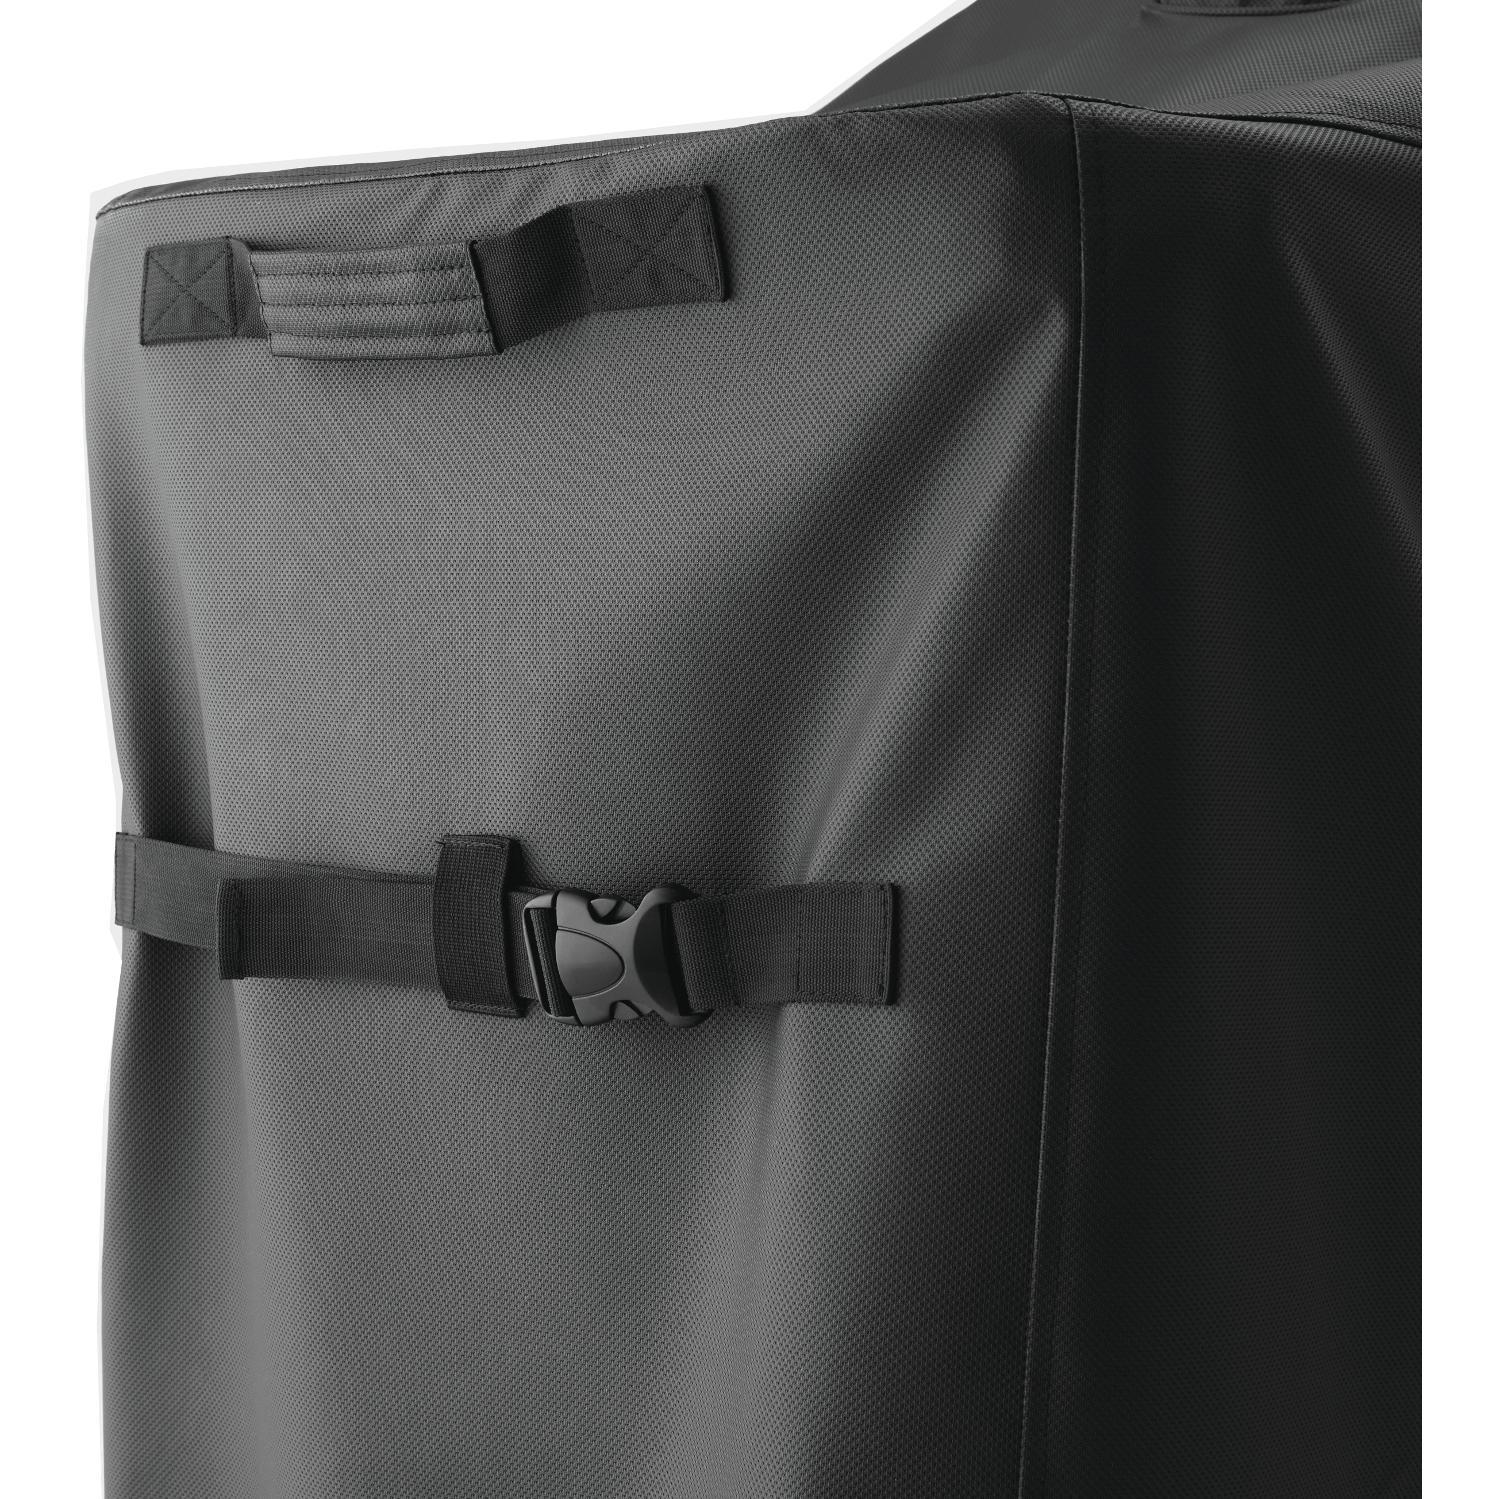 Acc30sb Dcs Acc30sb Grill Covers For 30 Quot Grills